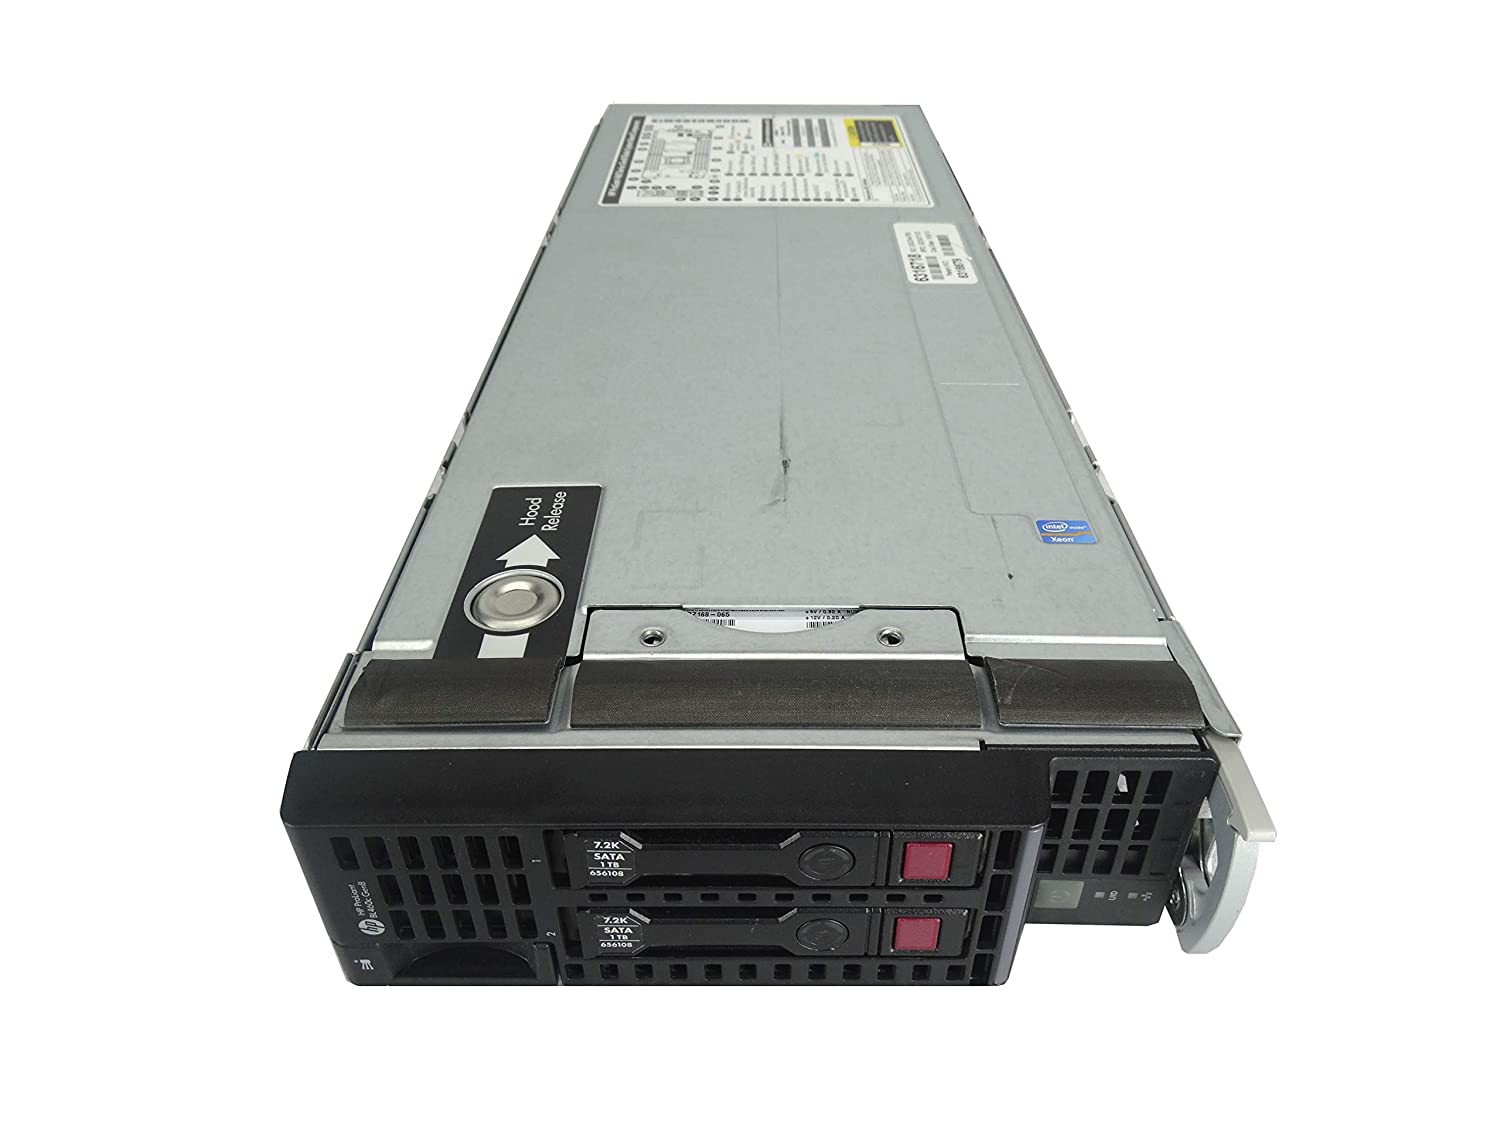 Amazon com: HP c7000 Chassis with 8X BL460c G8 Server (Per Blade: 2X